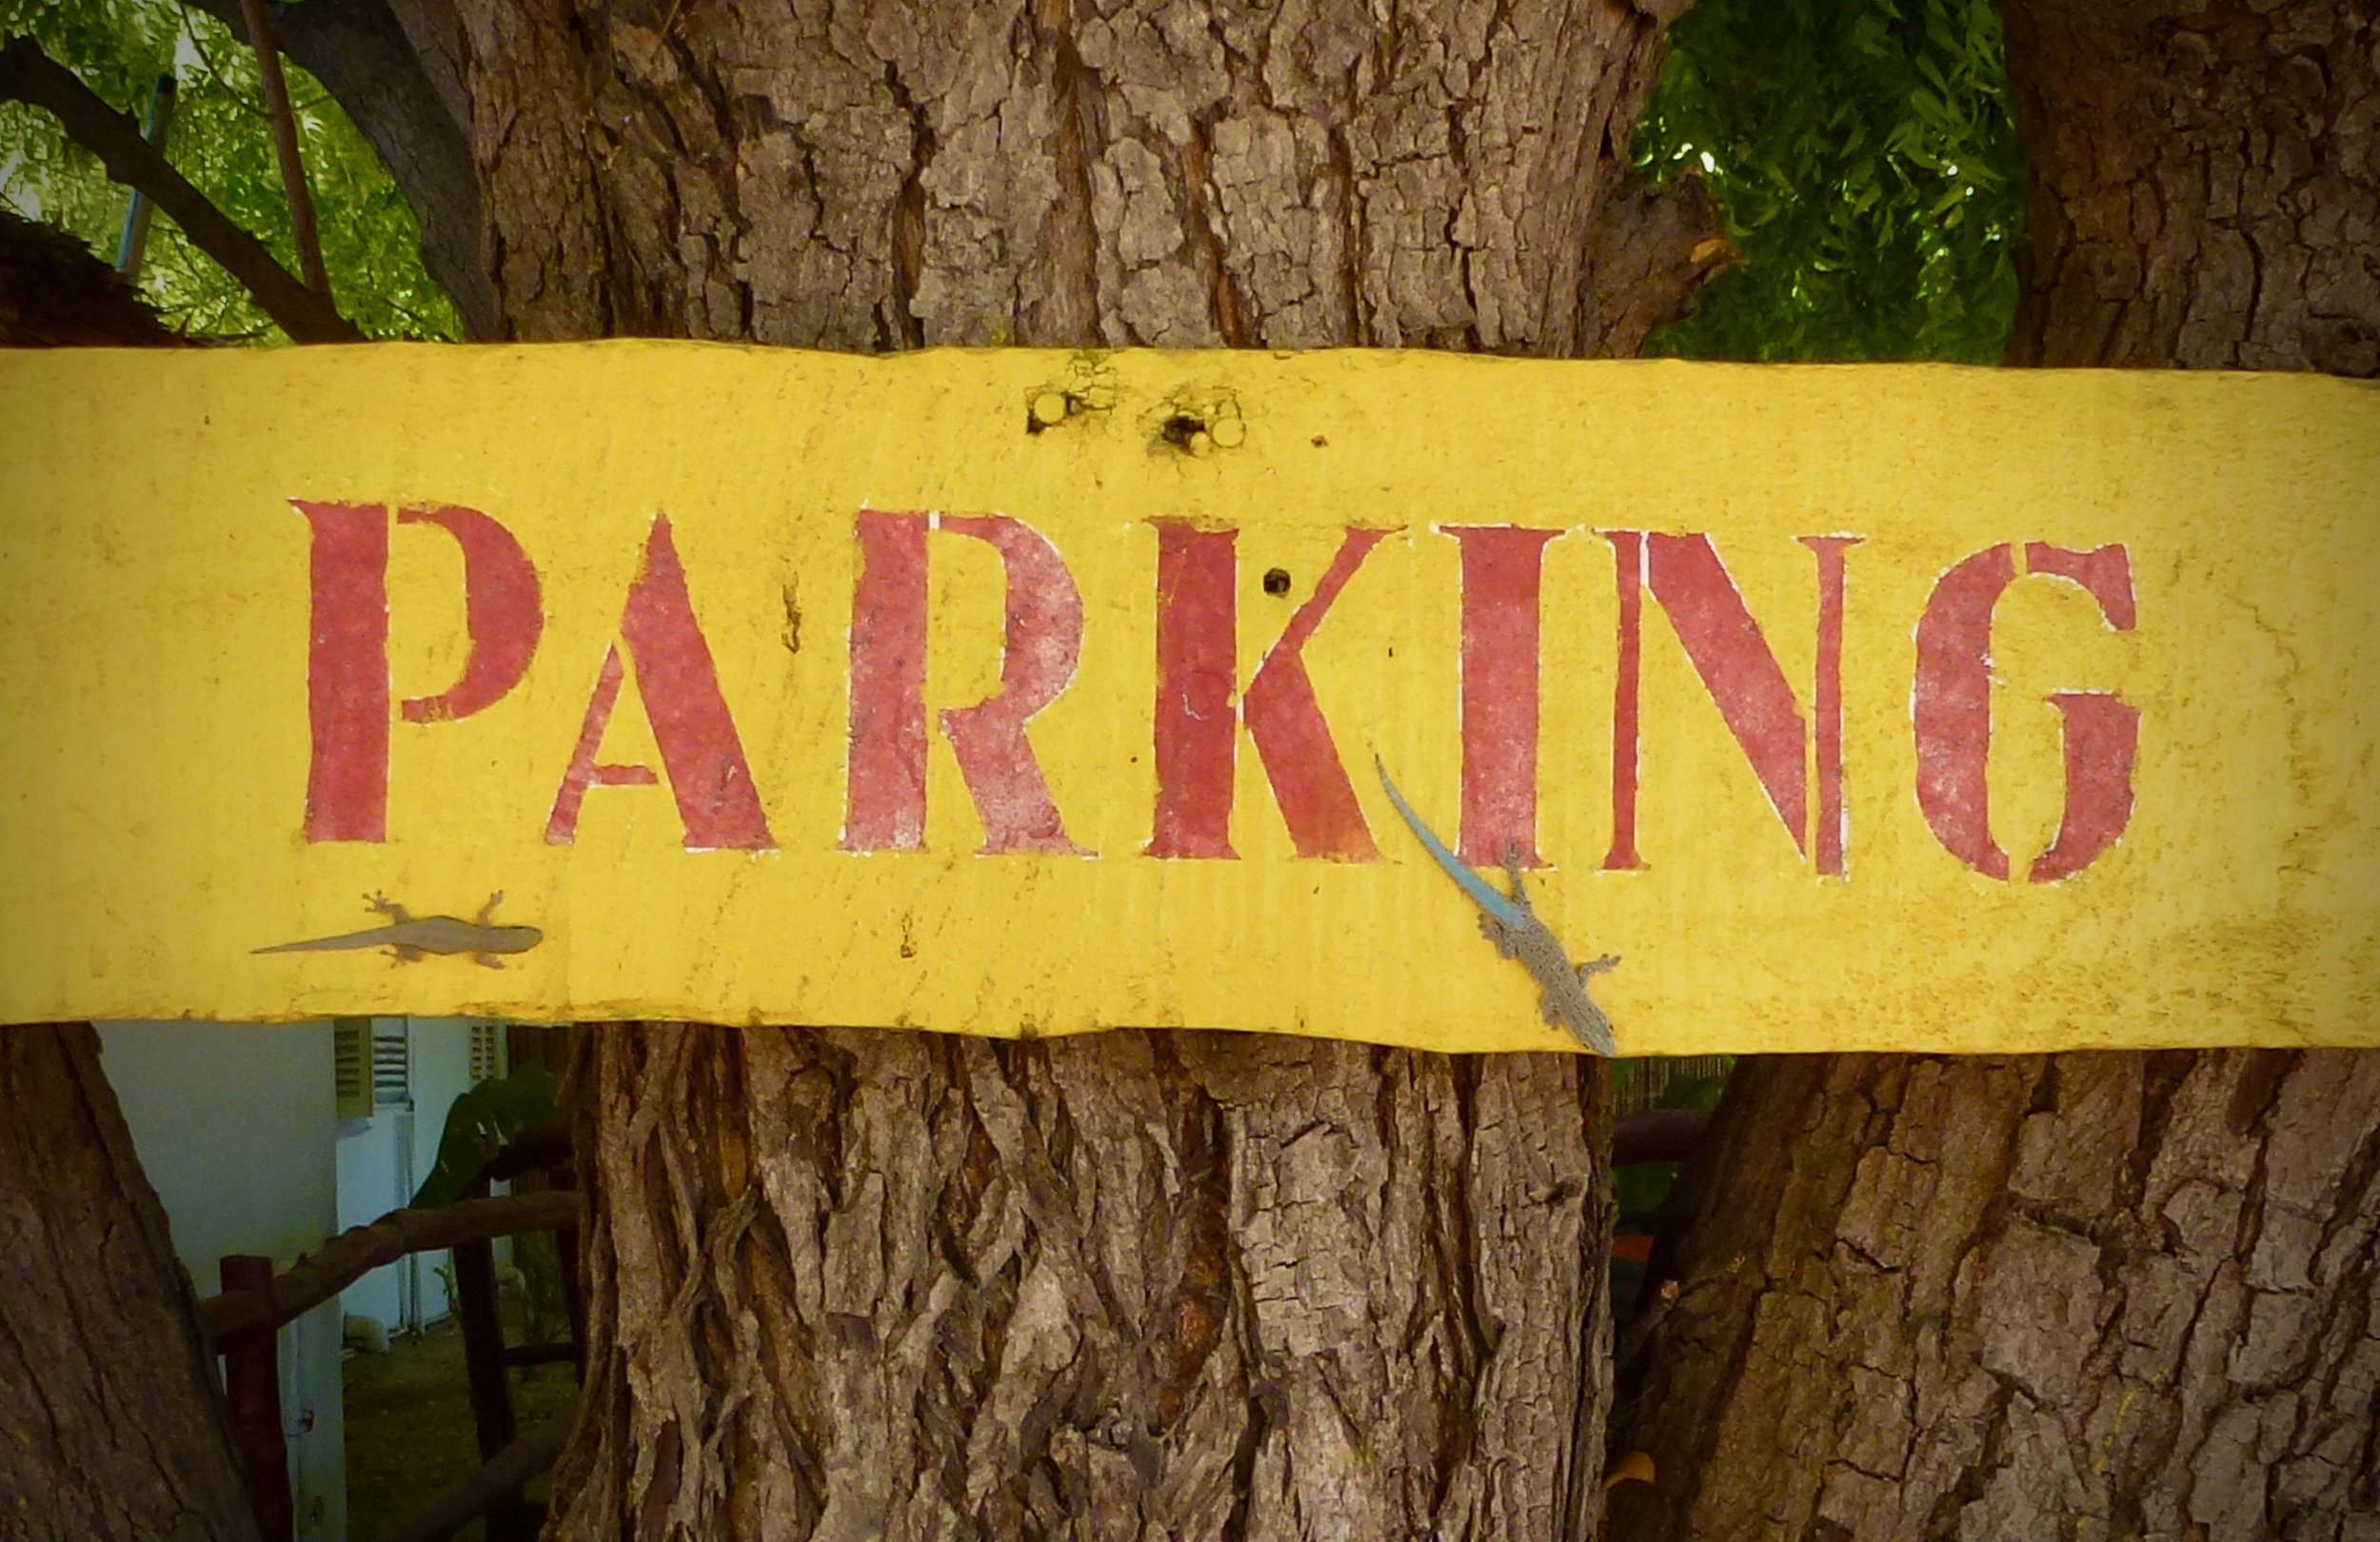 Two species of day geckos sharing this parking sign in Mangily: Phelsuma mutabilis and Phelsuma modesta.